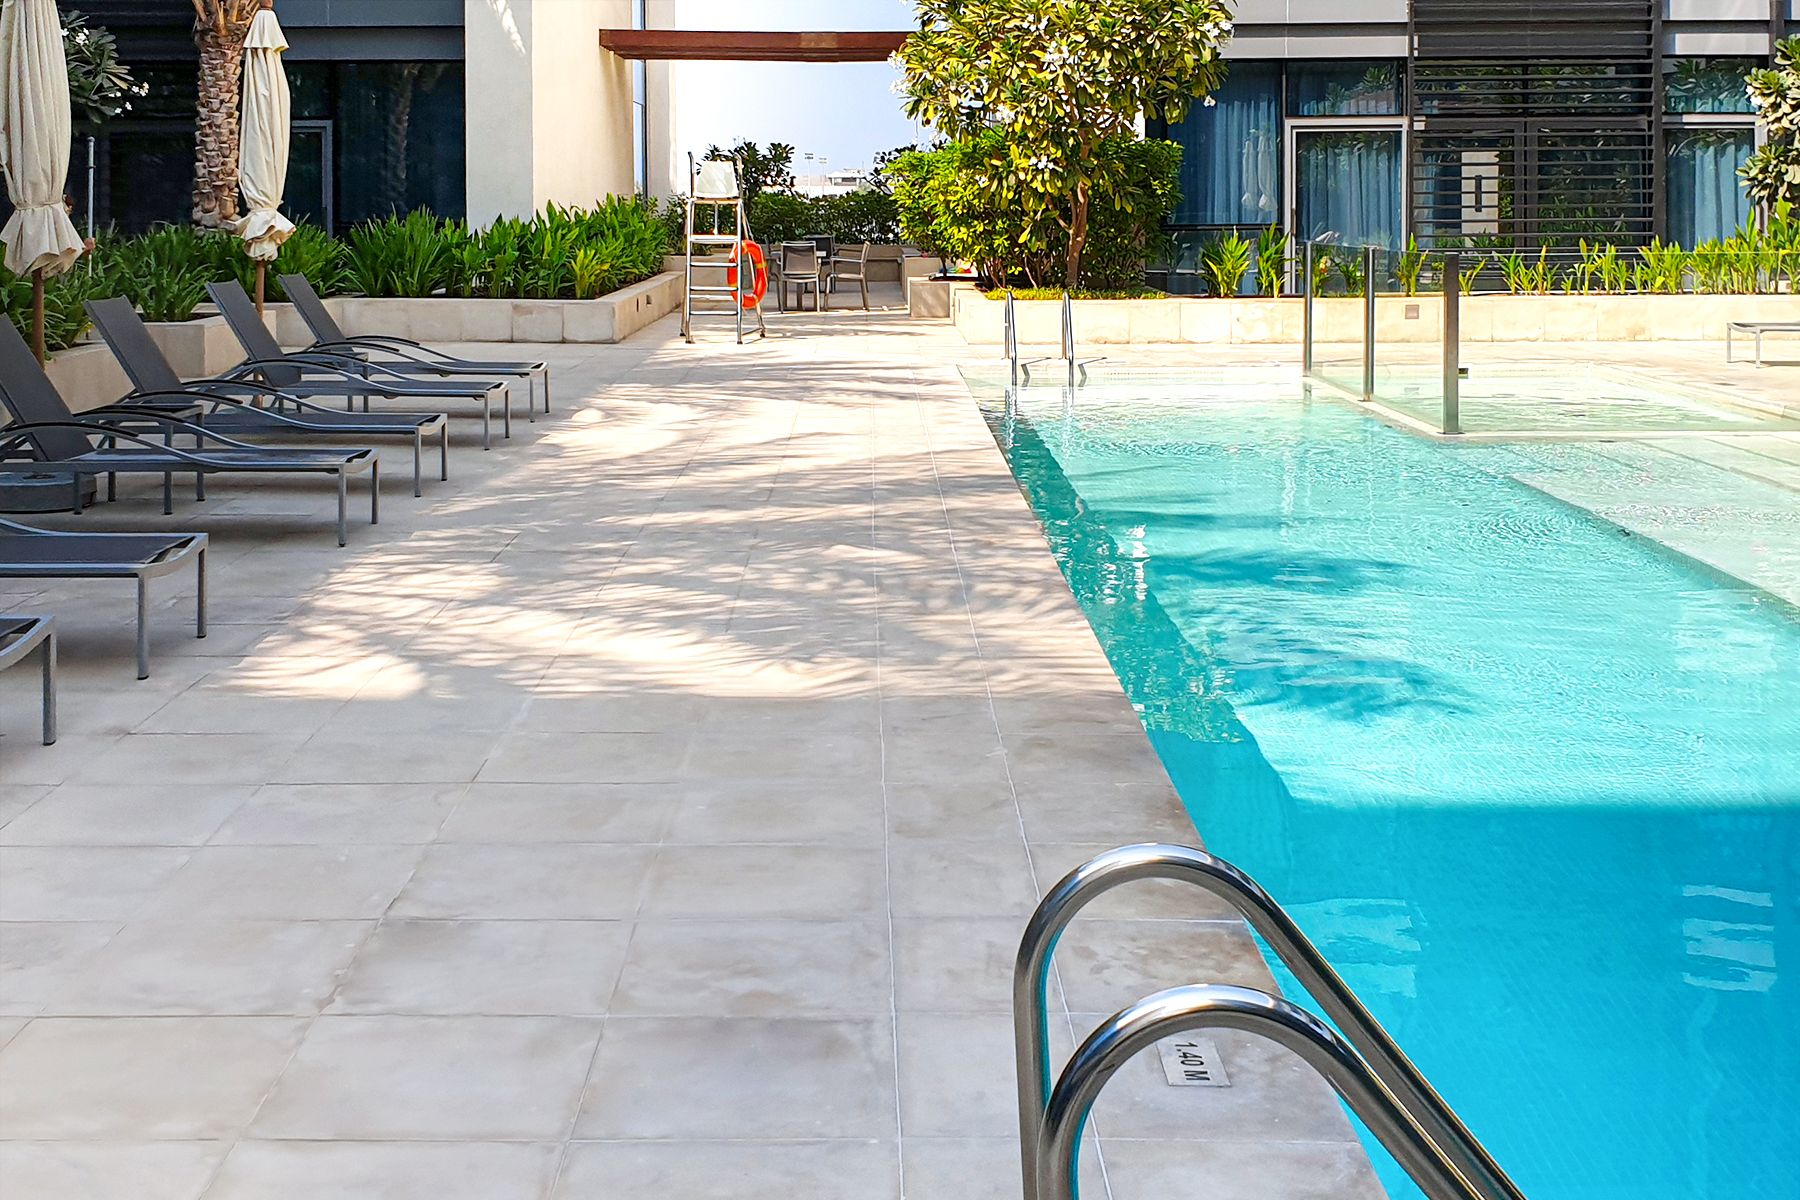 One-Time Offer For 2 Months Booking! Discover Poolside Apartment Living on This Massive 3 Beds in City Walk Building 11A